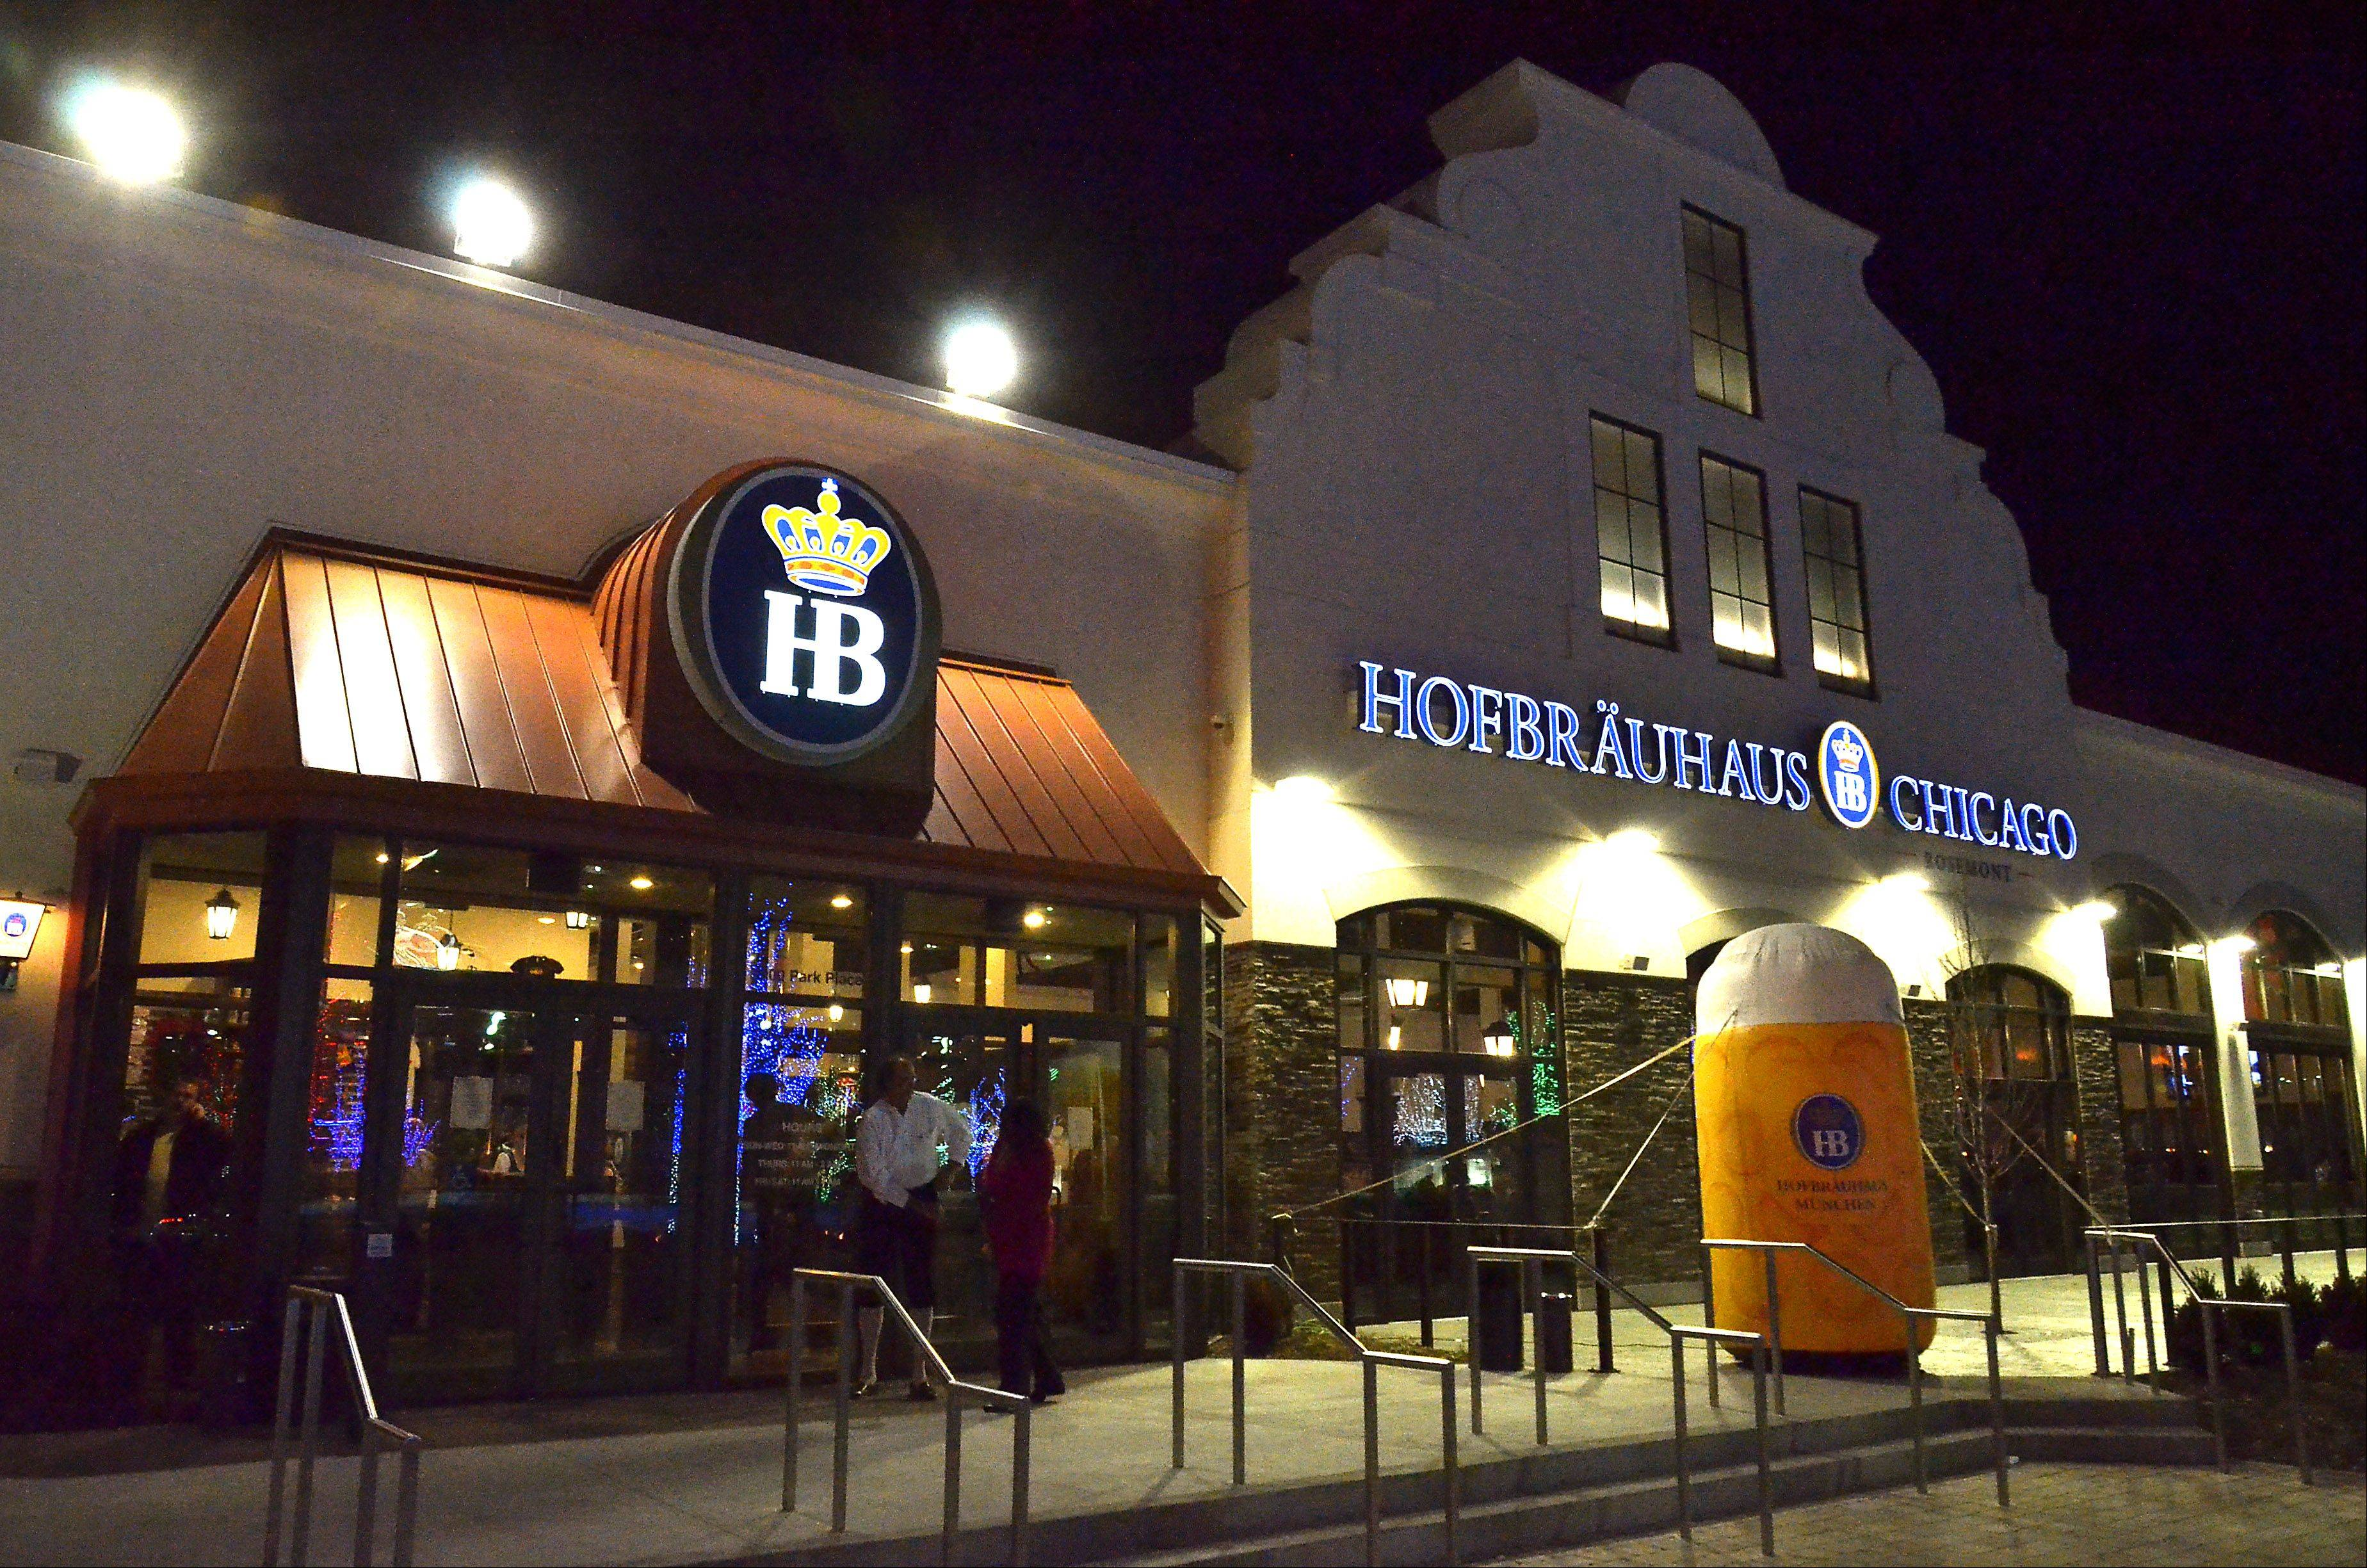 Hofbr�uhaus Chicago in Rosemont�s entertainment district will kick off the village�s first Oktoberfest Sept. 13. Festivities run through Oct. 31 and include authentic Bavarian entertainment, celebrity keg-tapping ceremonies and an �Oktoberfestbier� crafted for the celebration.